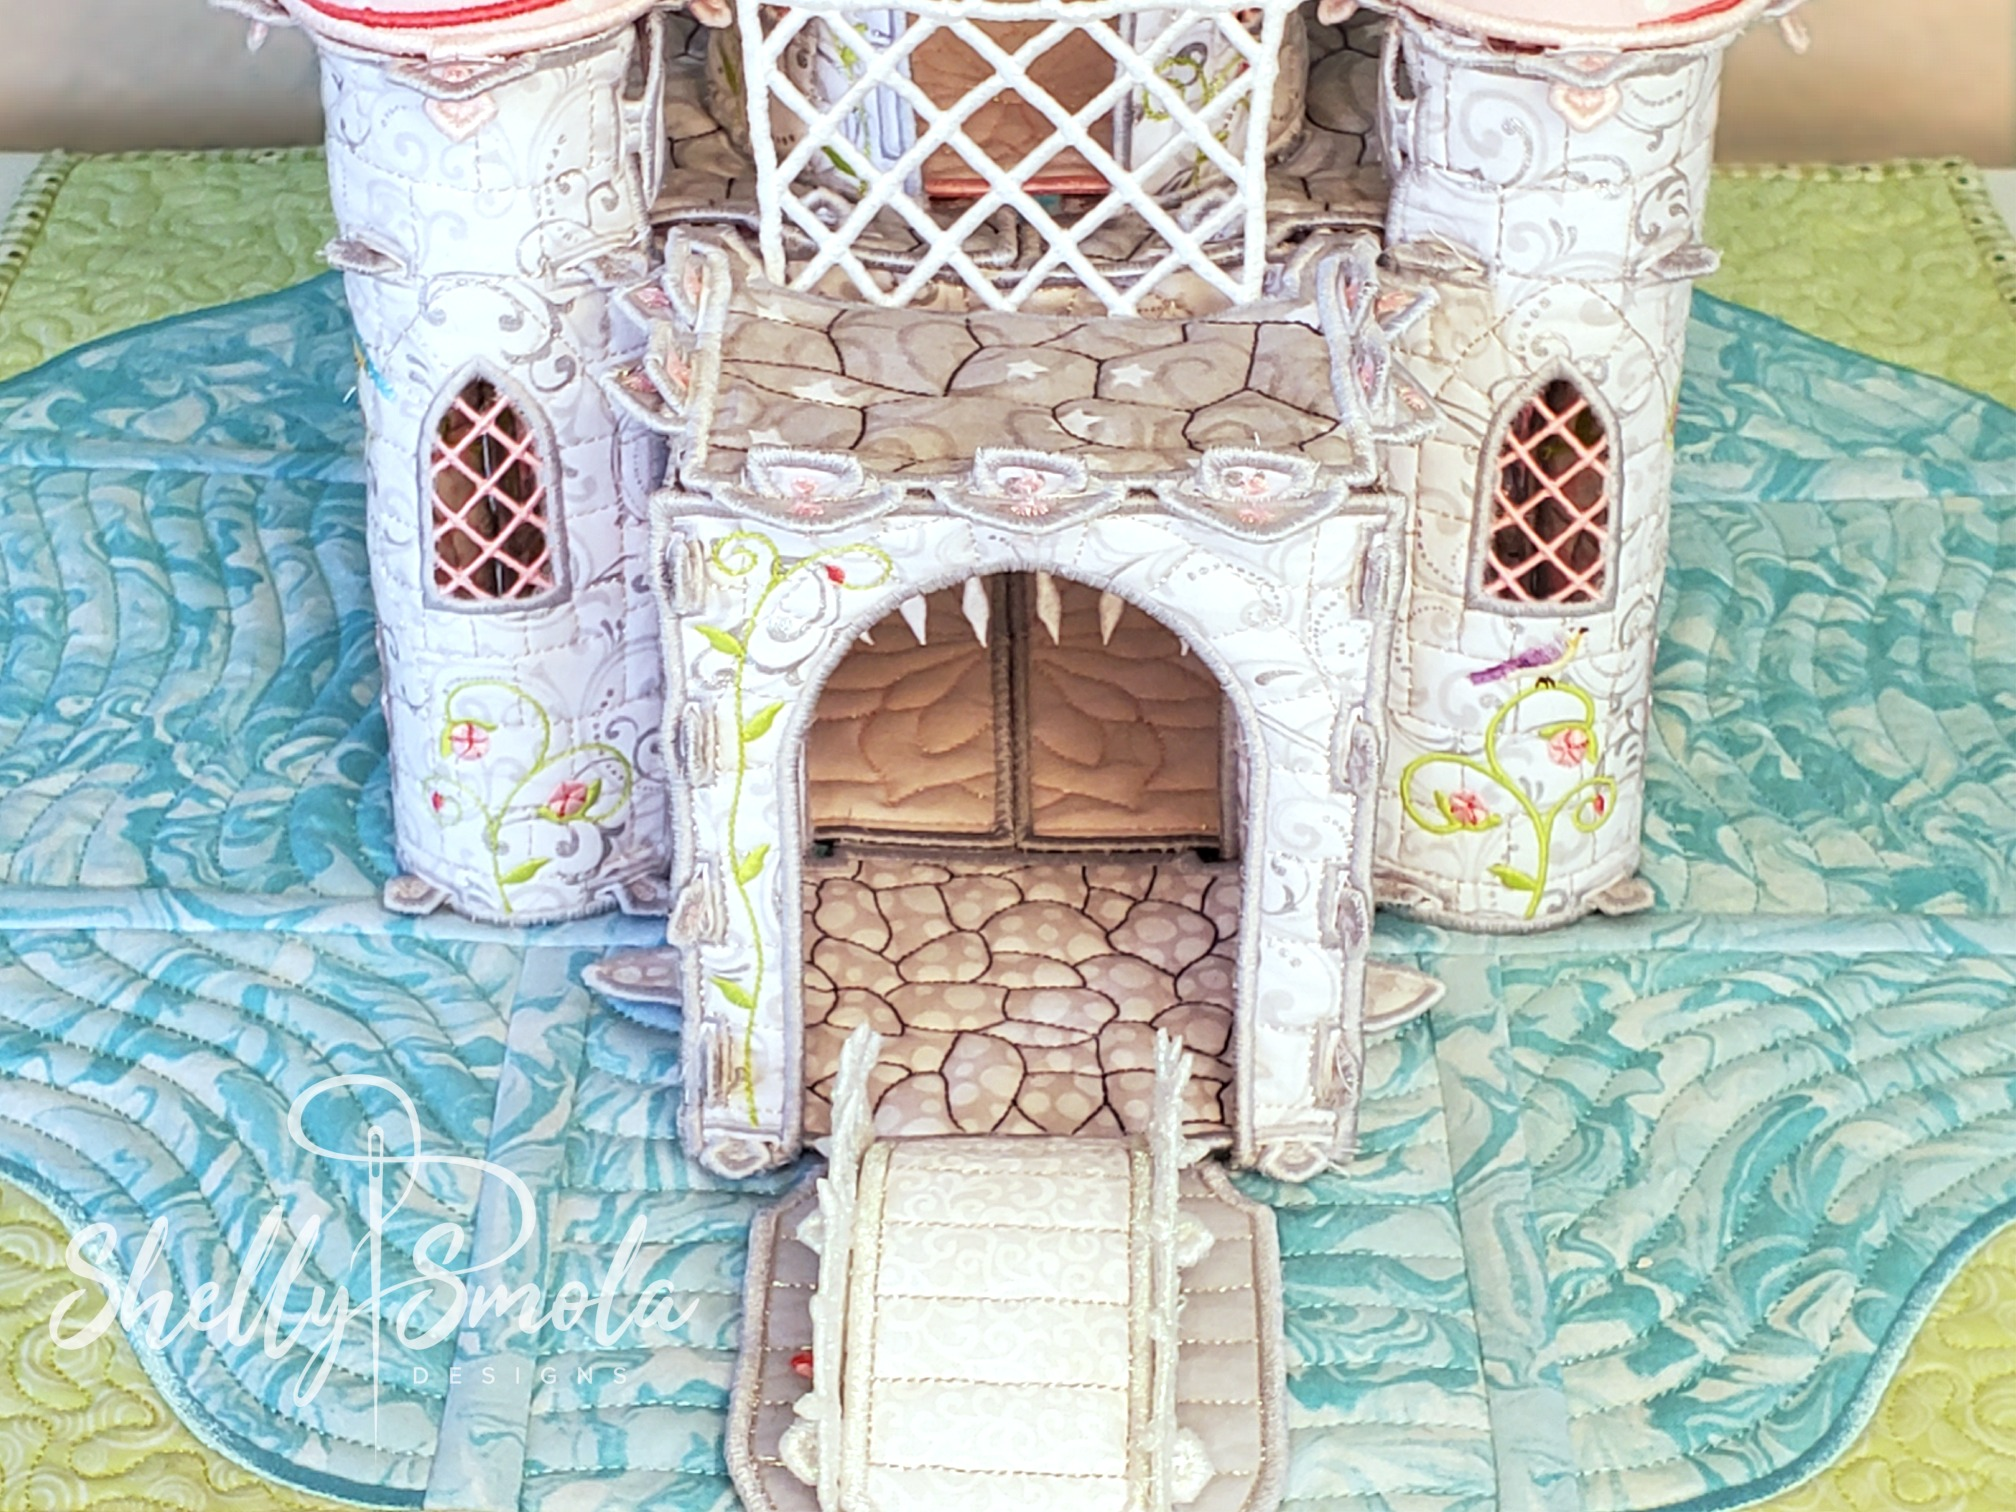 Once Upon a Time Castle Portcullis by Shelly Smola